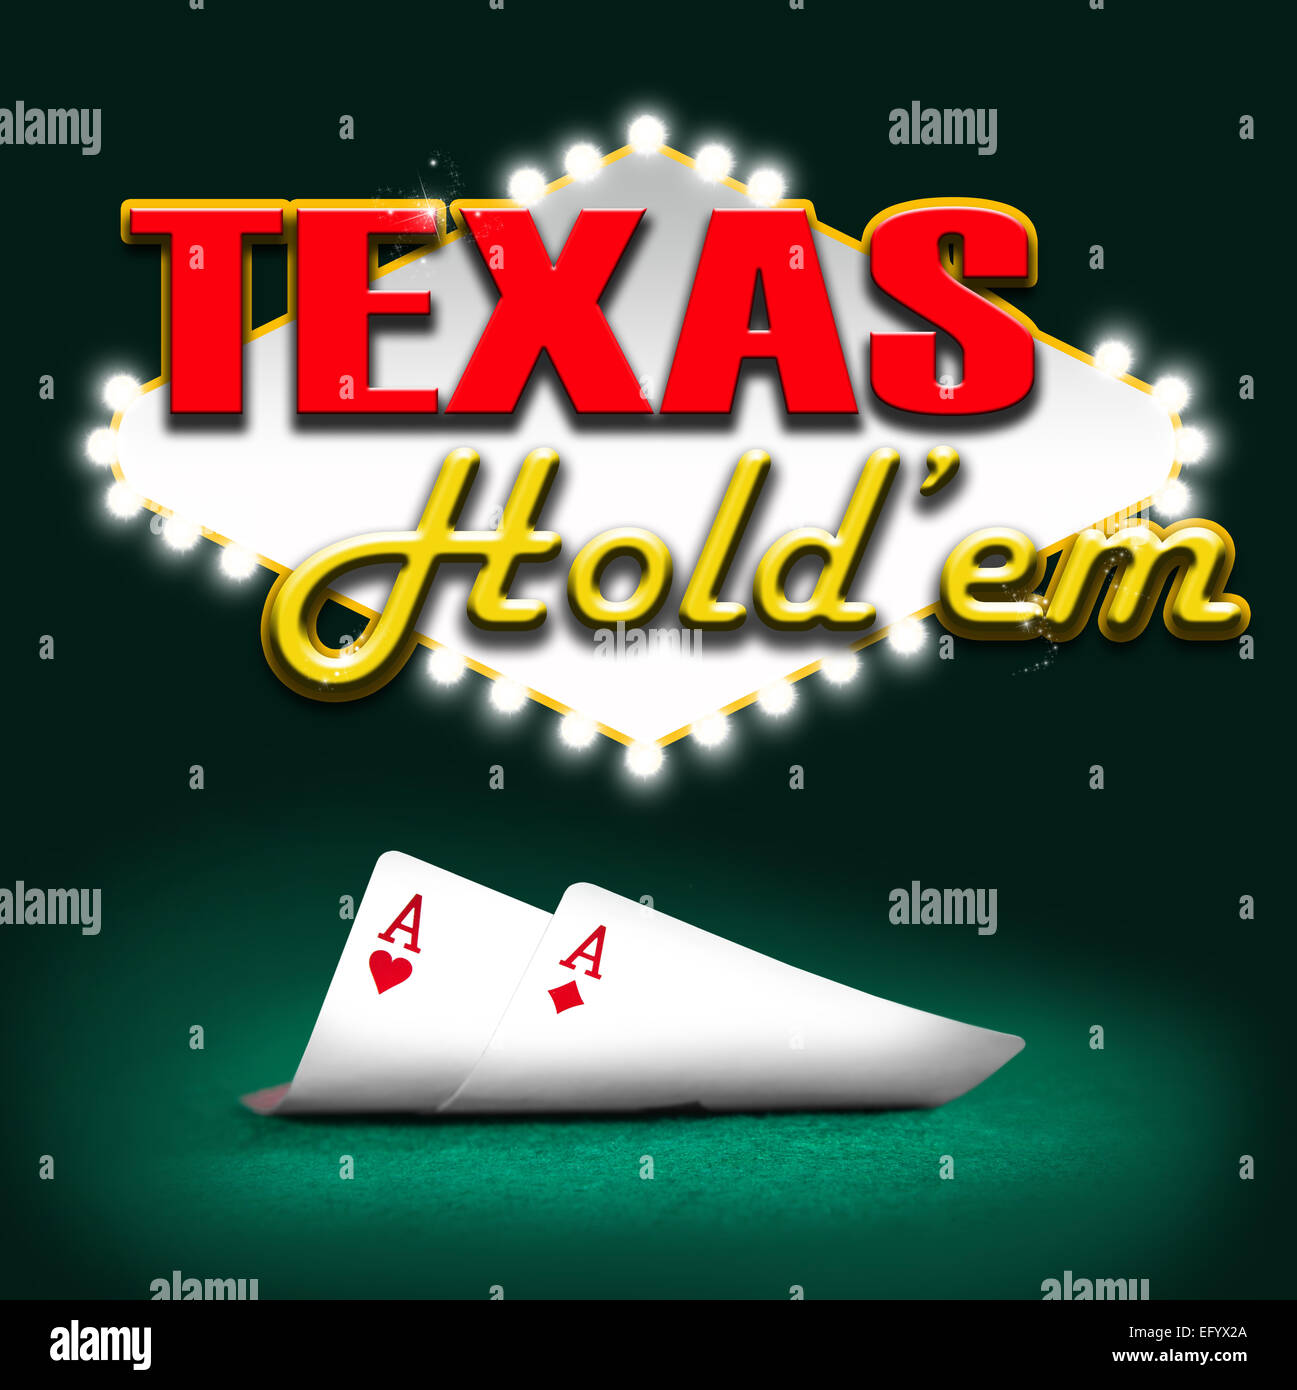 Texas hold'em, gambling background color - Stock Image